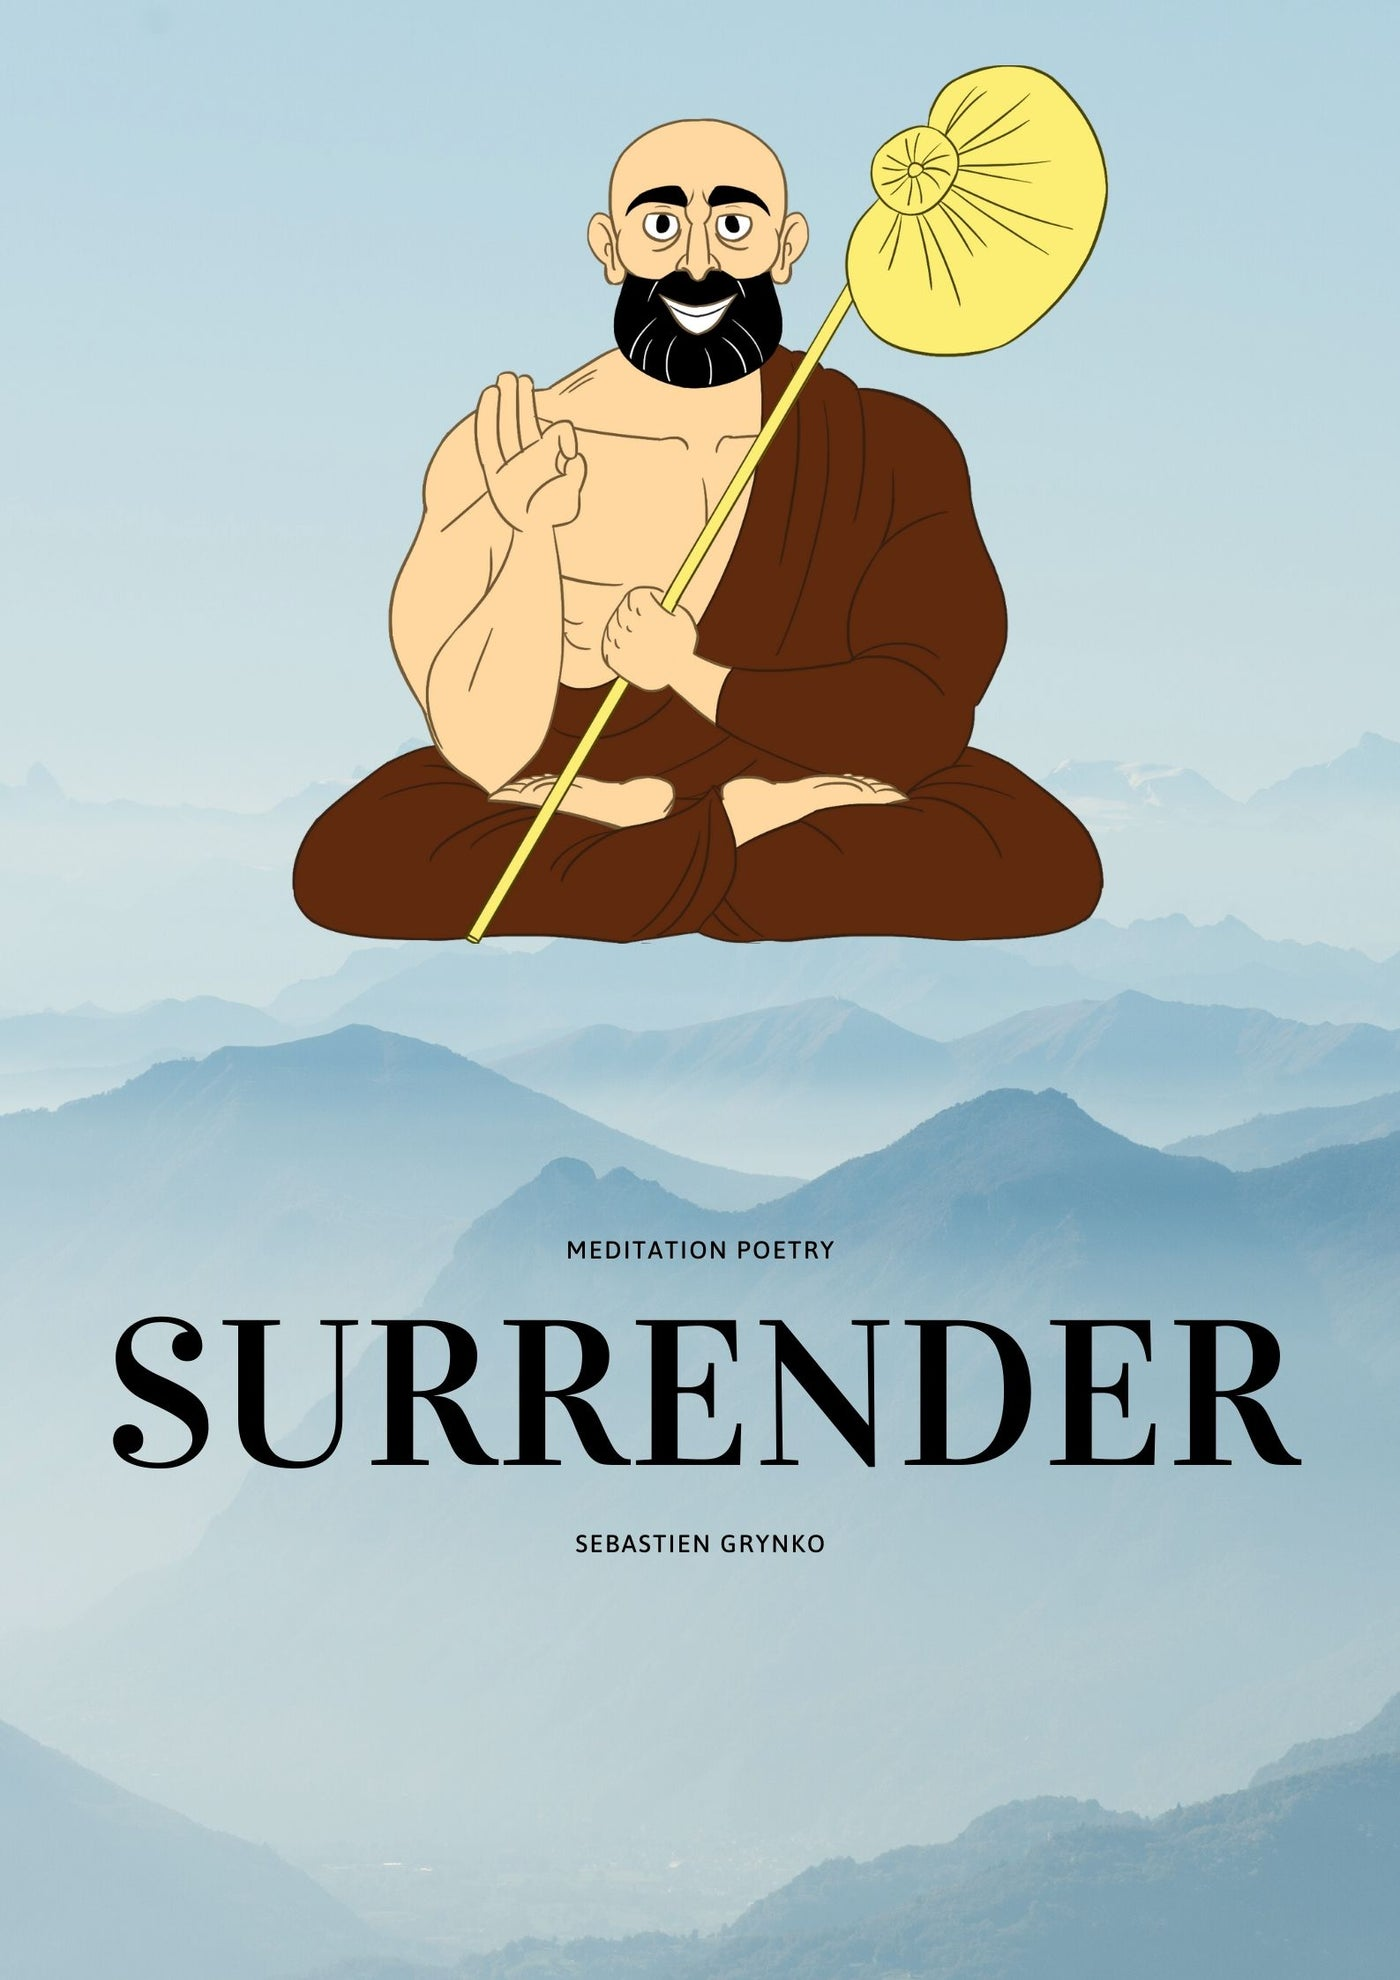 Meditation Poetry - Surrender